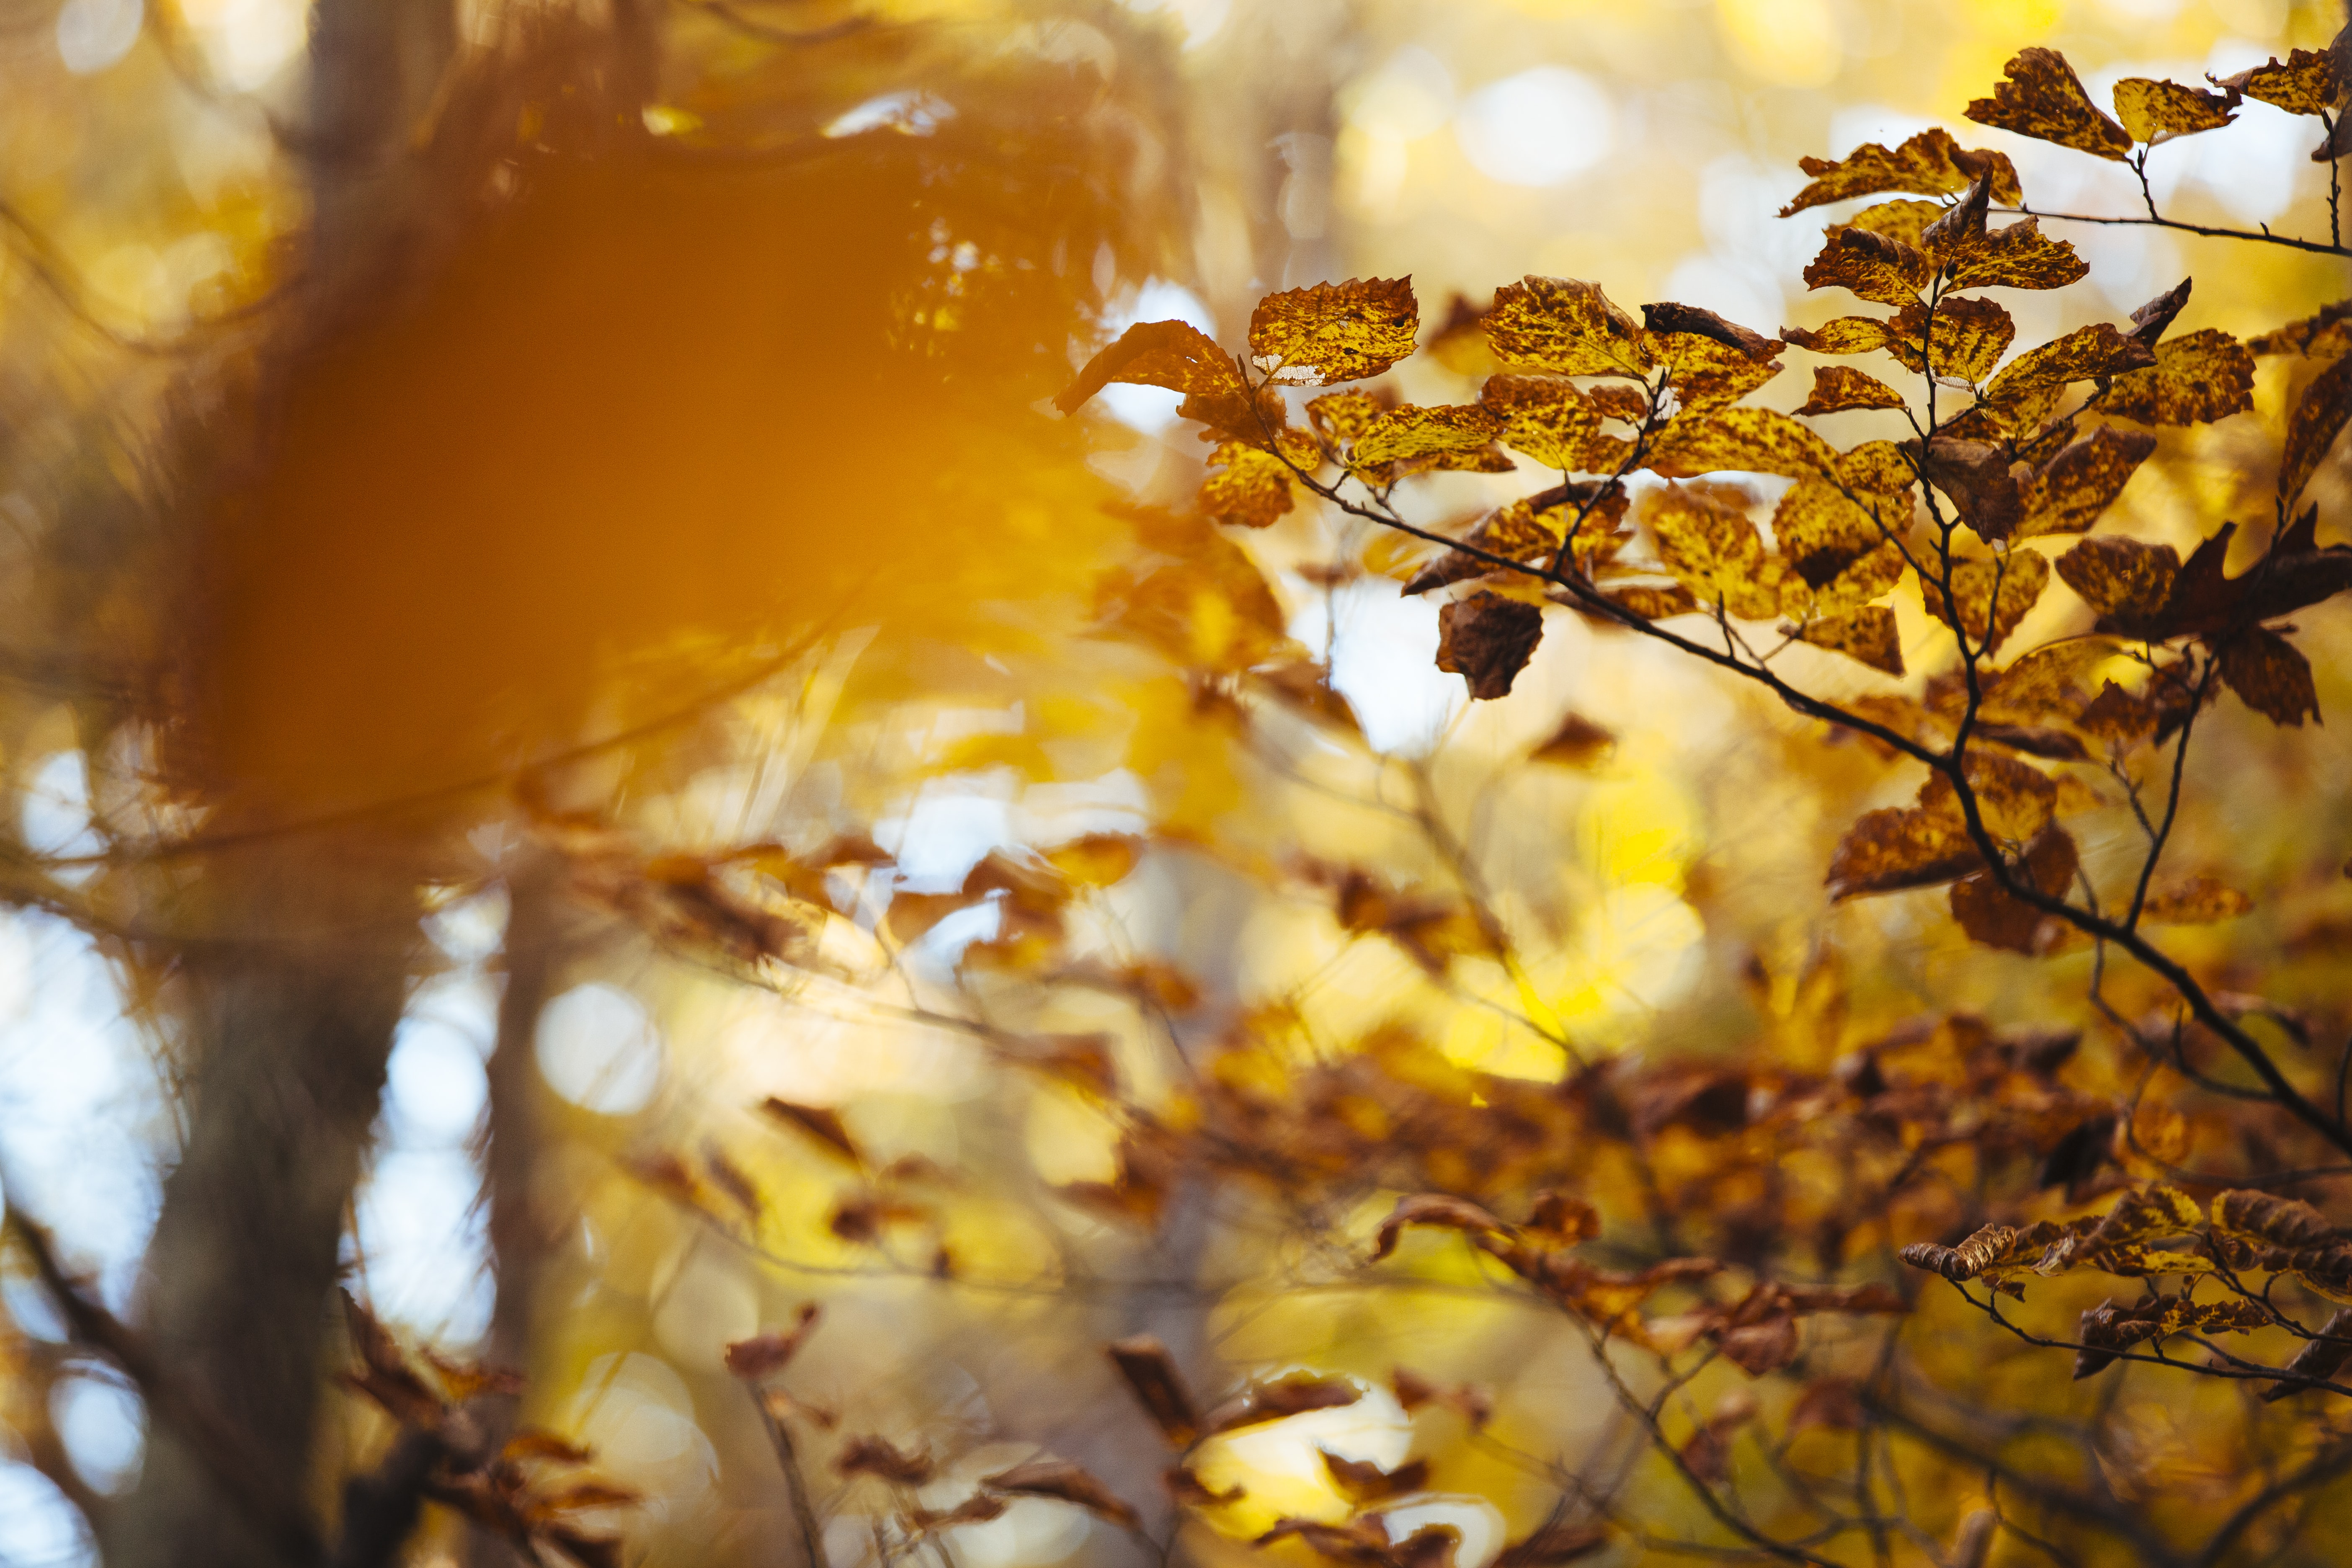 Sun shines over autumn leaves on trees in the forest